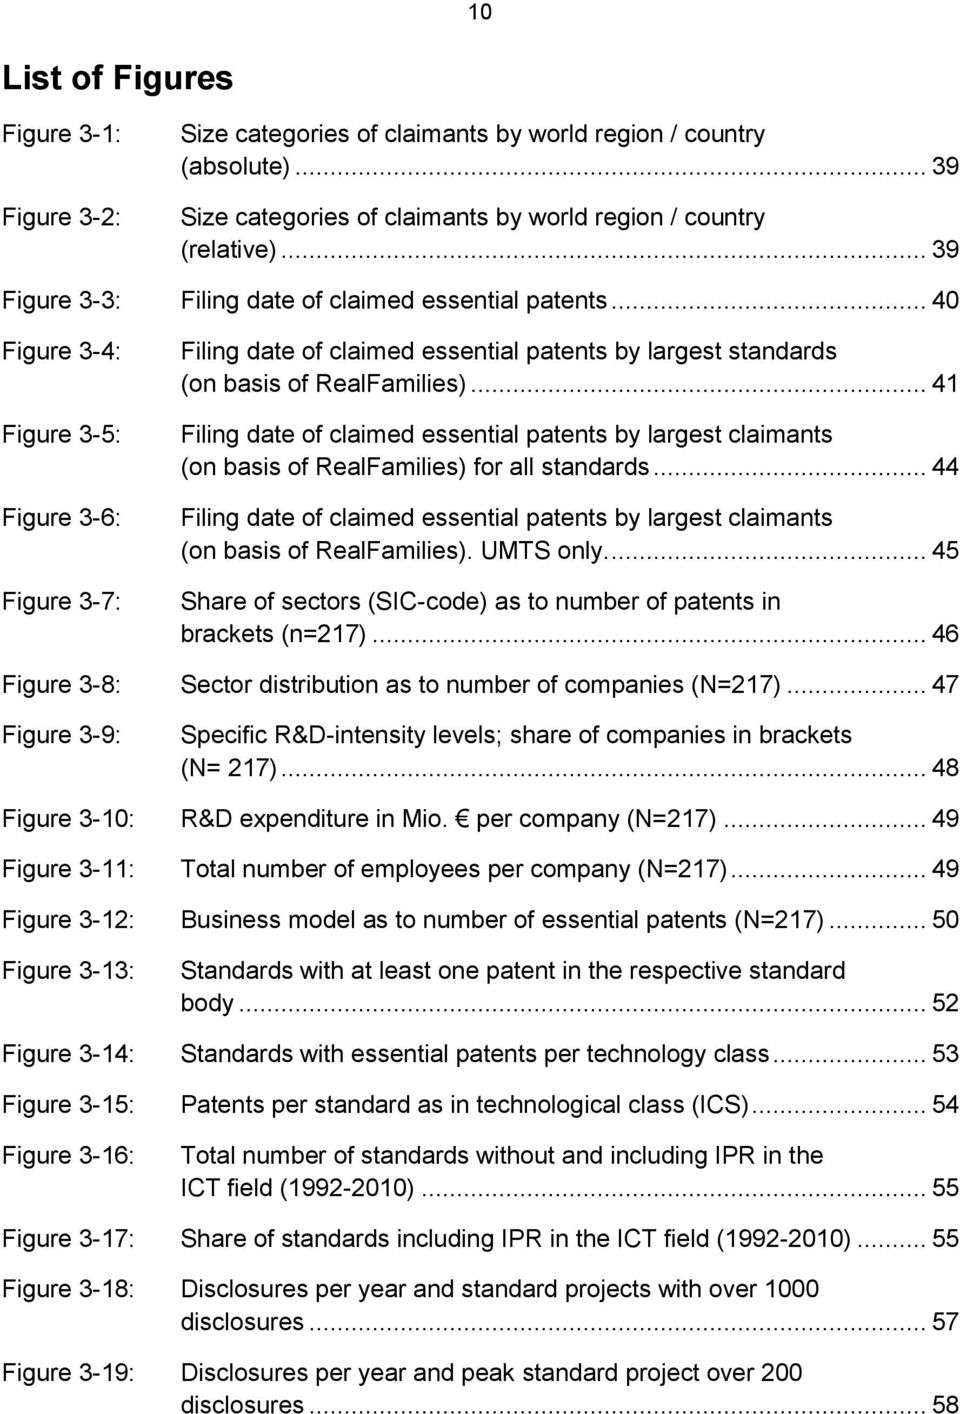 .. 41 Filing date of claimed essential patents by largest claimants (on basis of RealFamilies) for all standards.